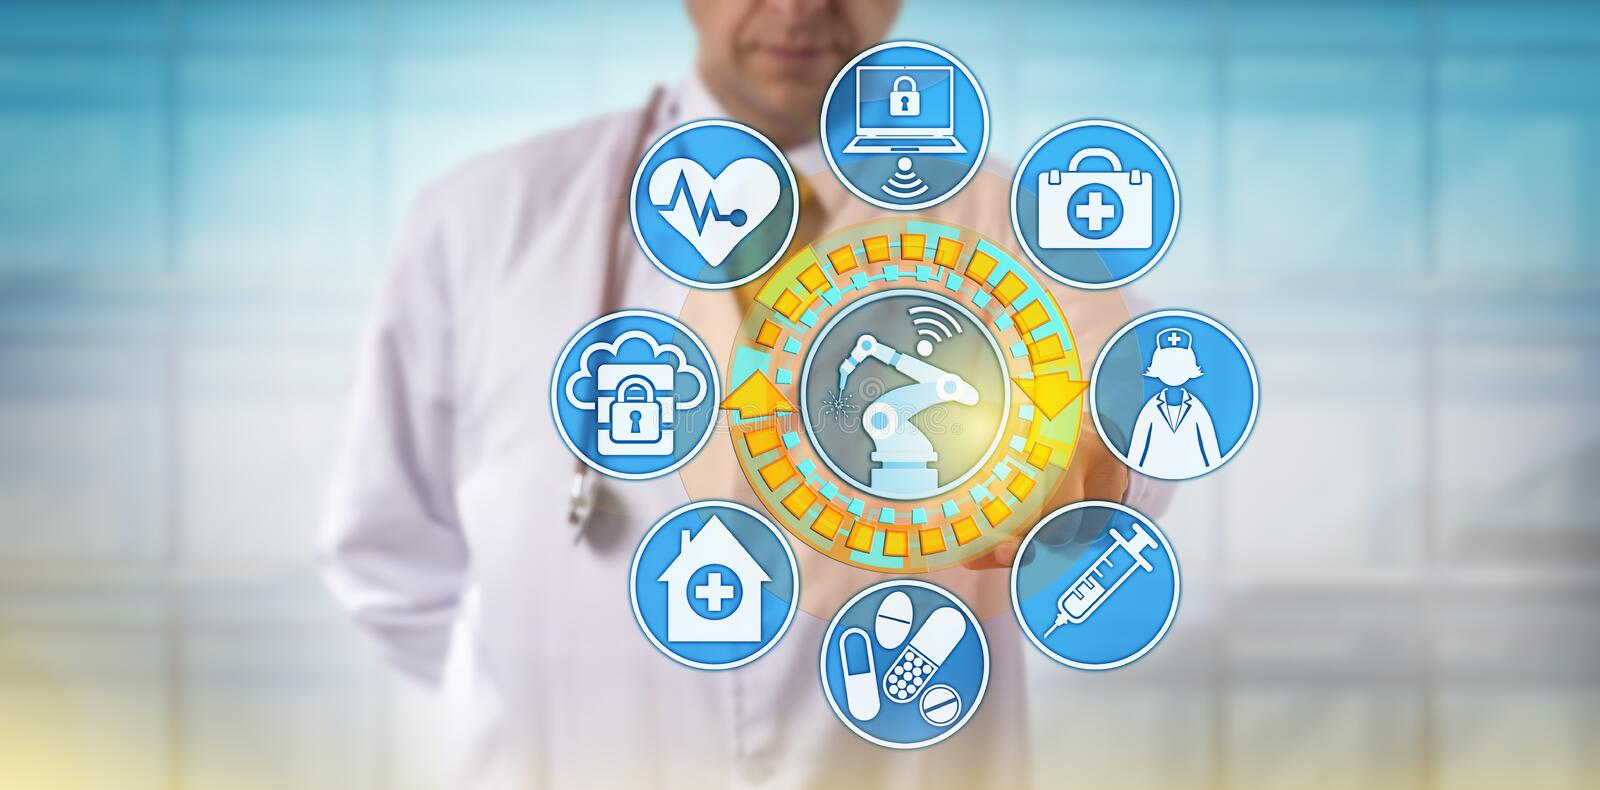 Male Physician Operating Surgical Robot Via App. Unrecognizable male physician is plugging a surgical robot into a health care application interface. Healthcare stock photos